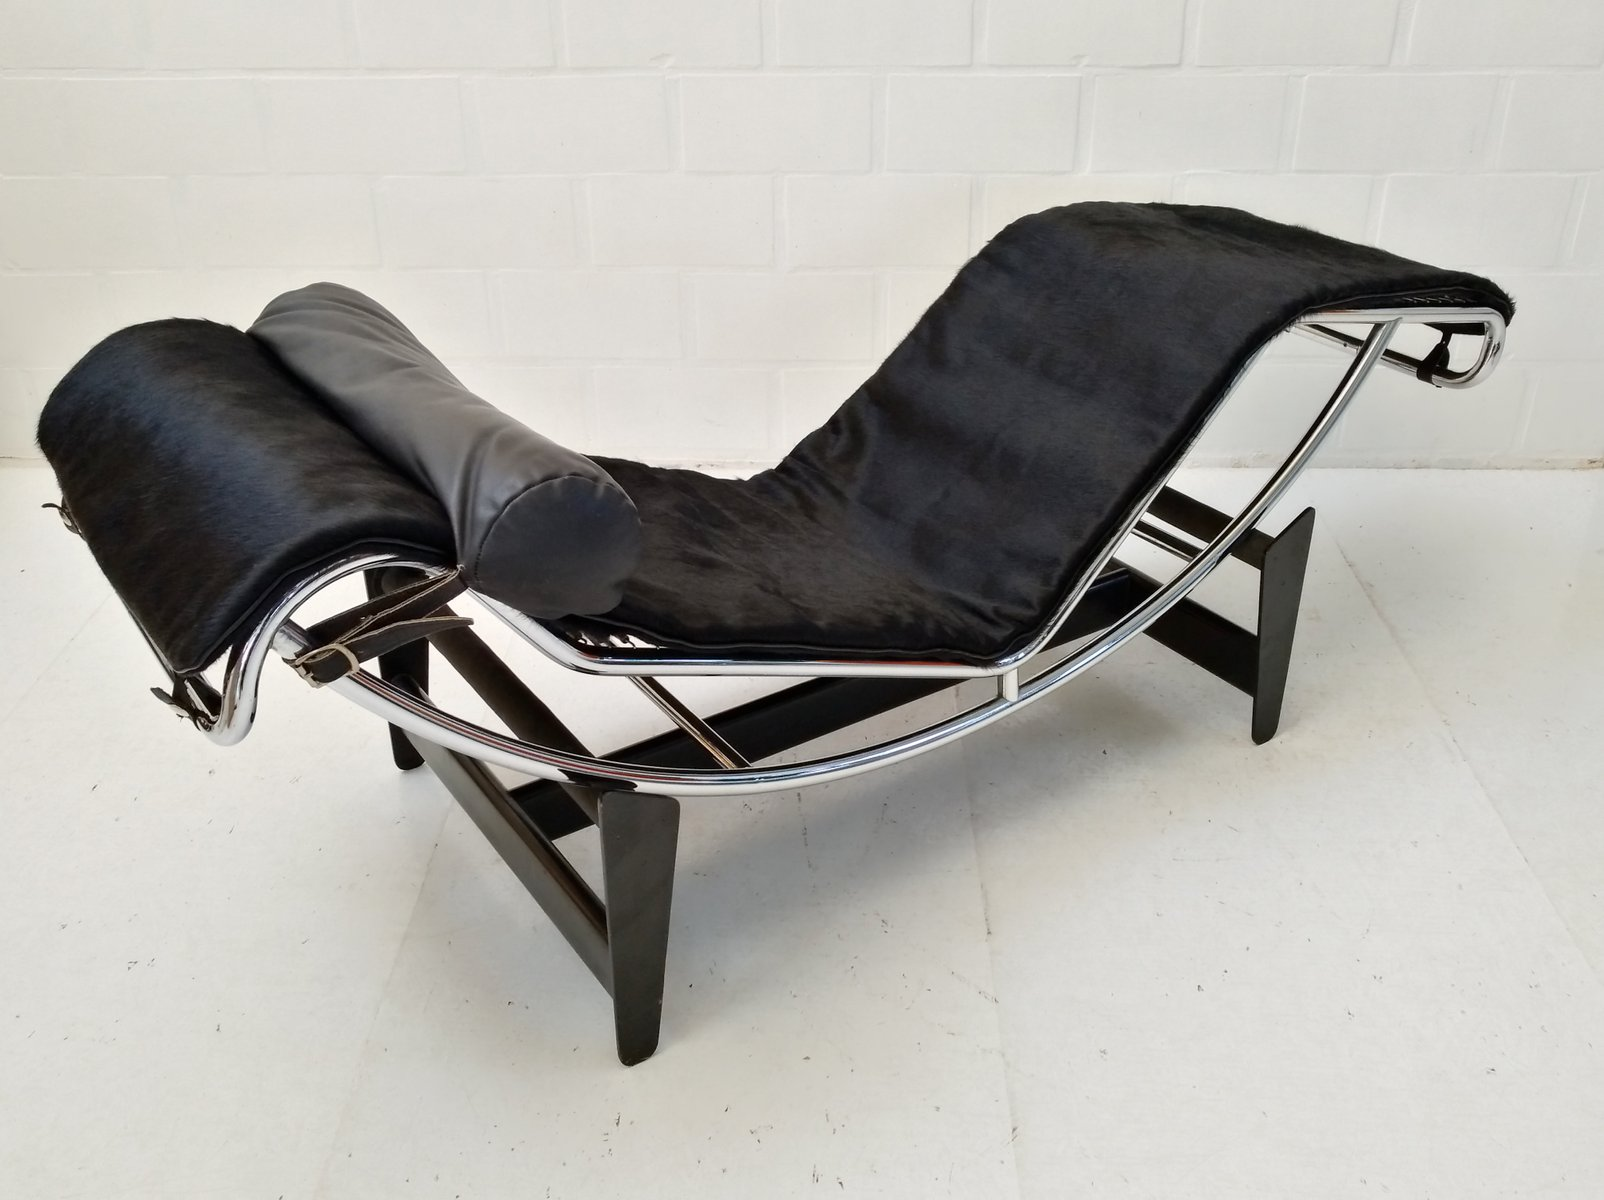 Early lc4 chaise longue by le corbusier perriand for Chaise longue le corbusier cassina